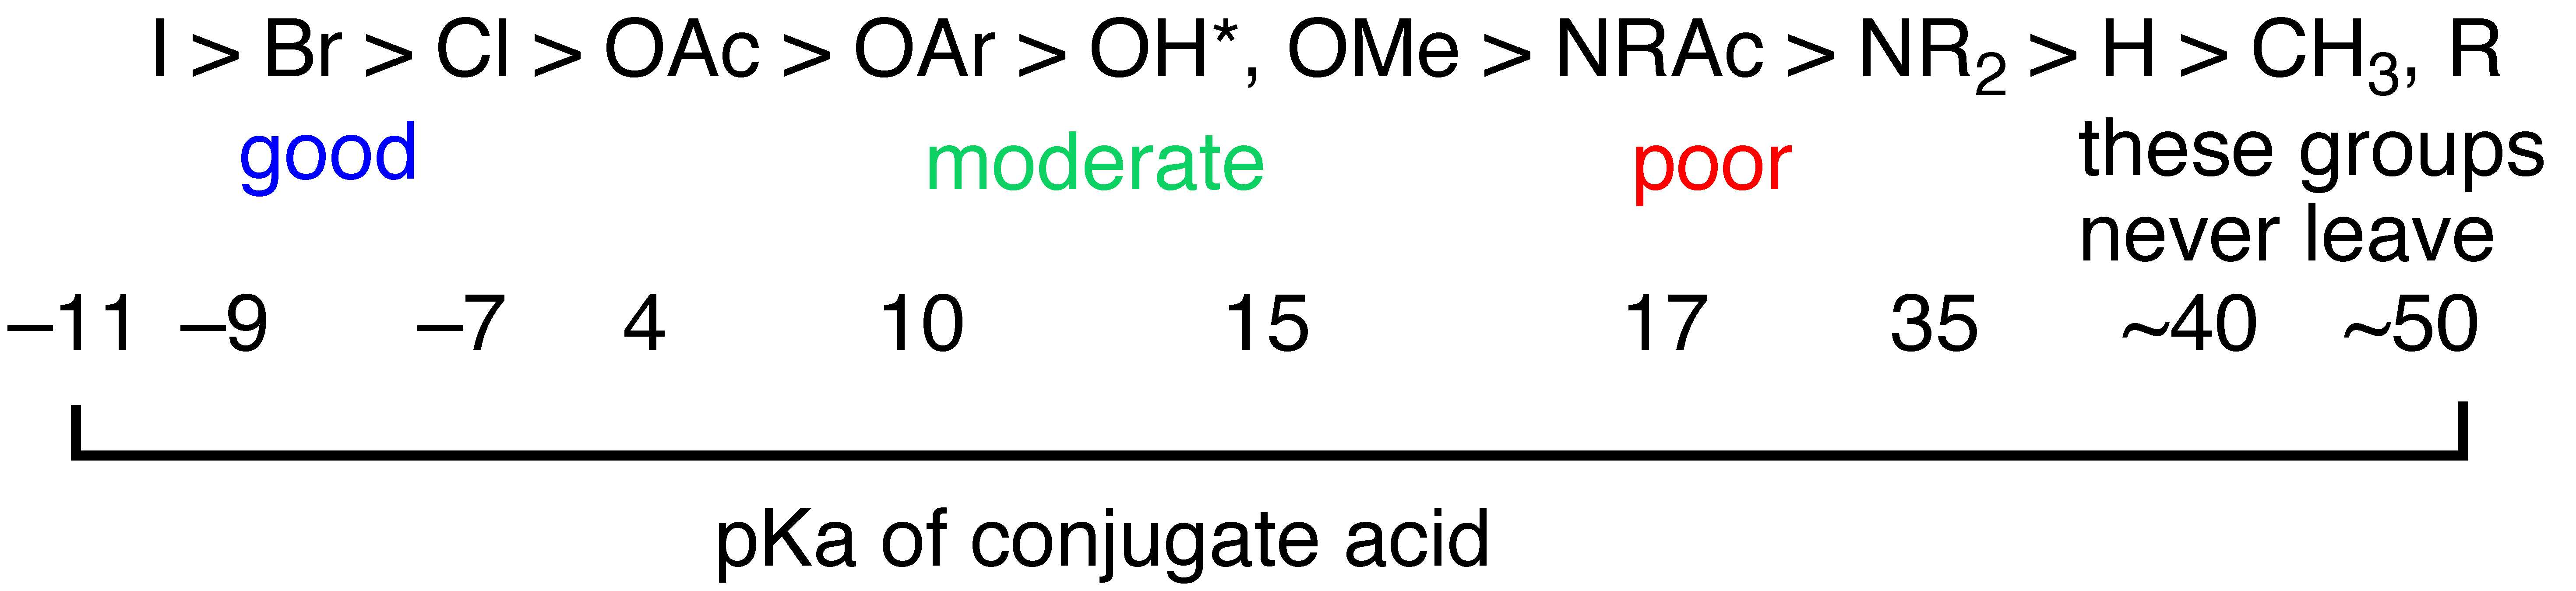 is a hydrolysis reaction anabolic or catabolic